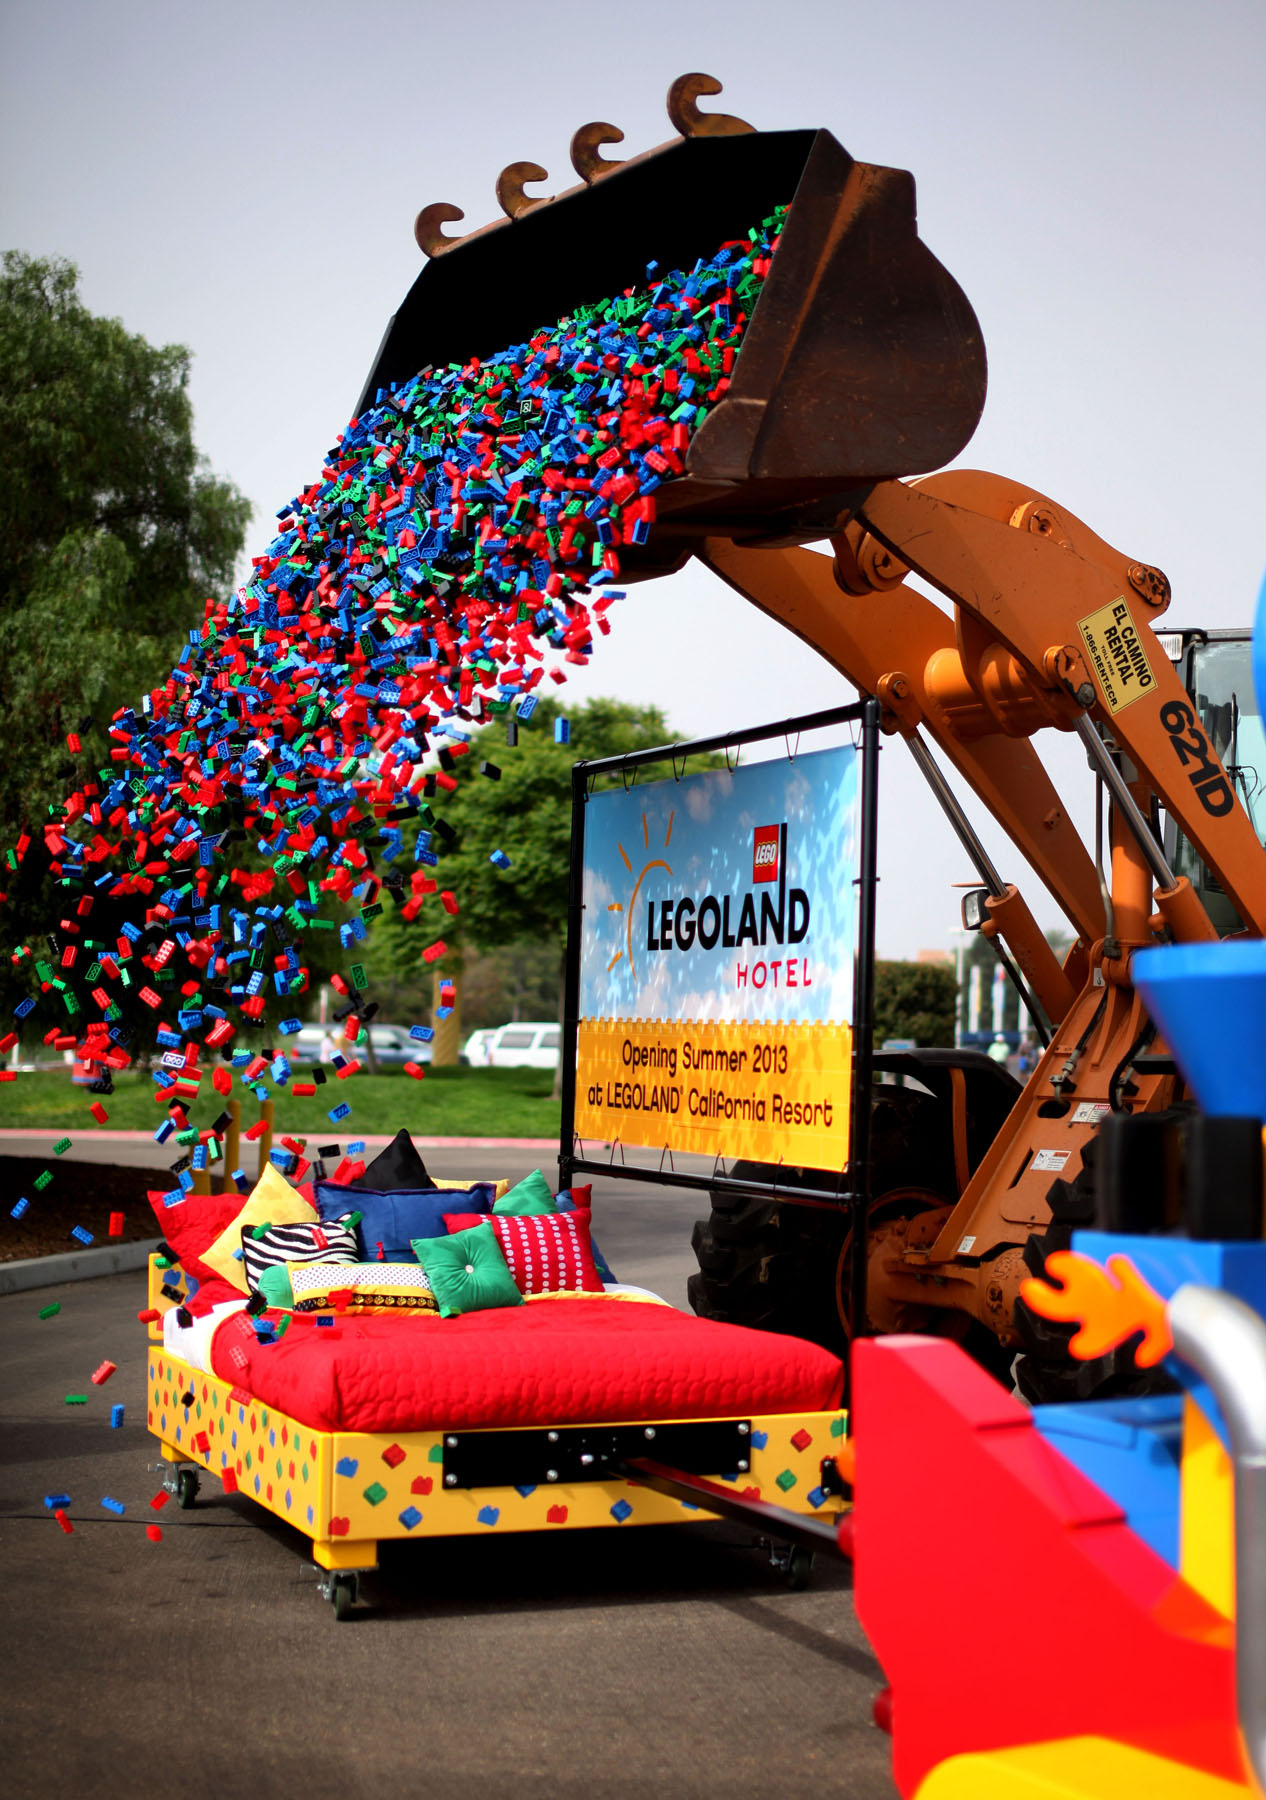 The Legoland Hotel is Coming Soon